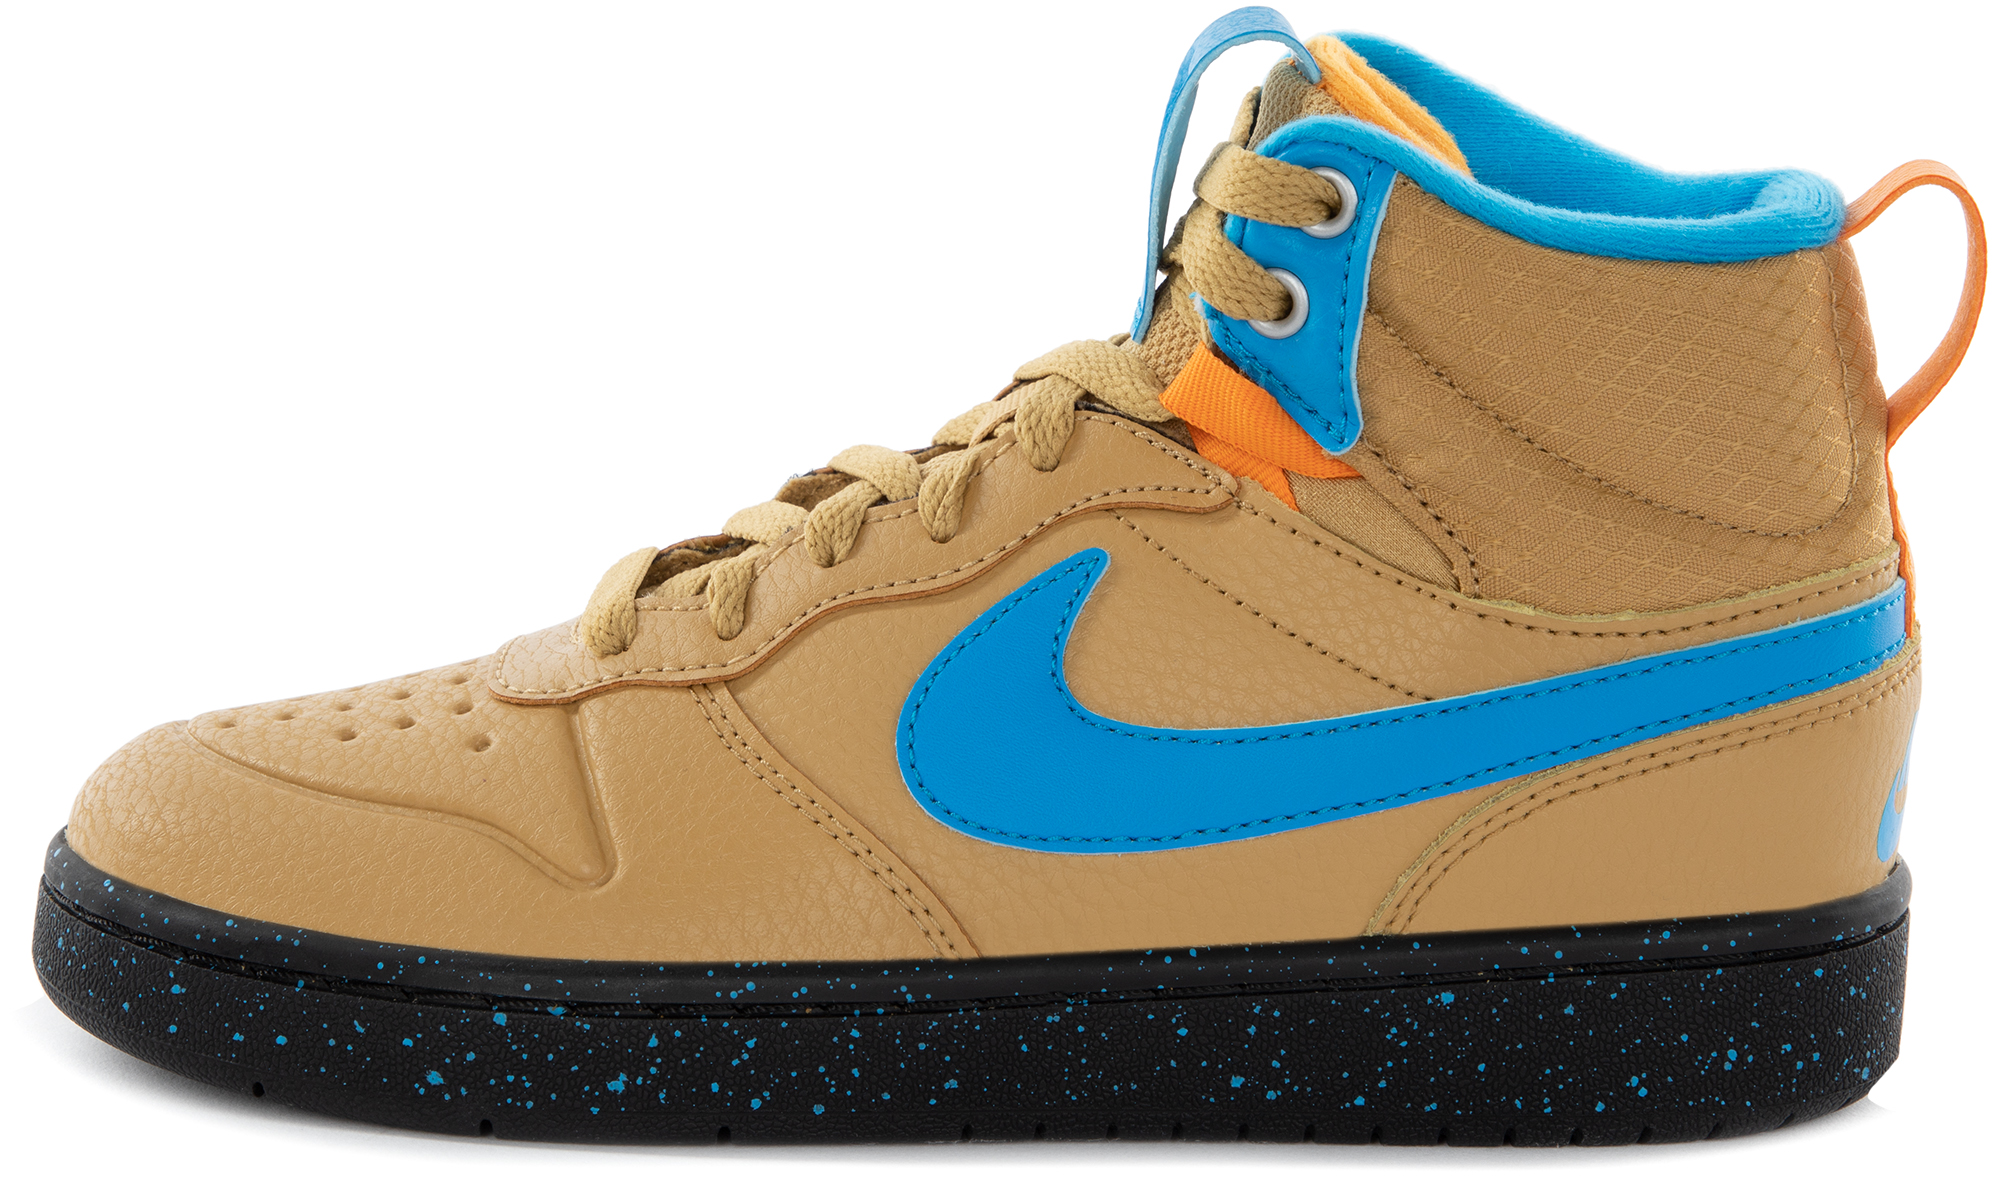 Nike Кеды детские Nike Court Borough Mid 2 Boot, размер 34.5 кеды nike nike ni464amdnak9